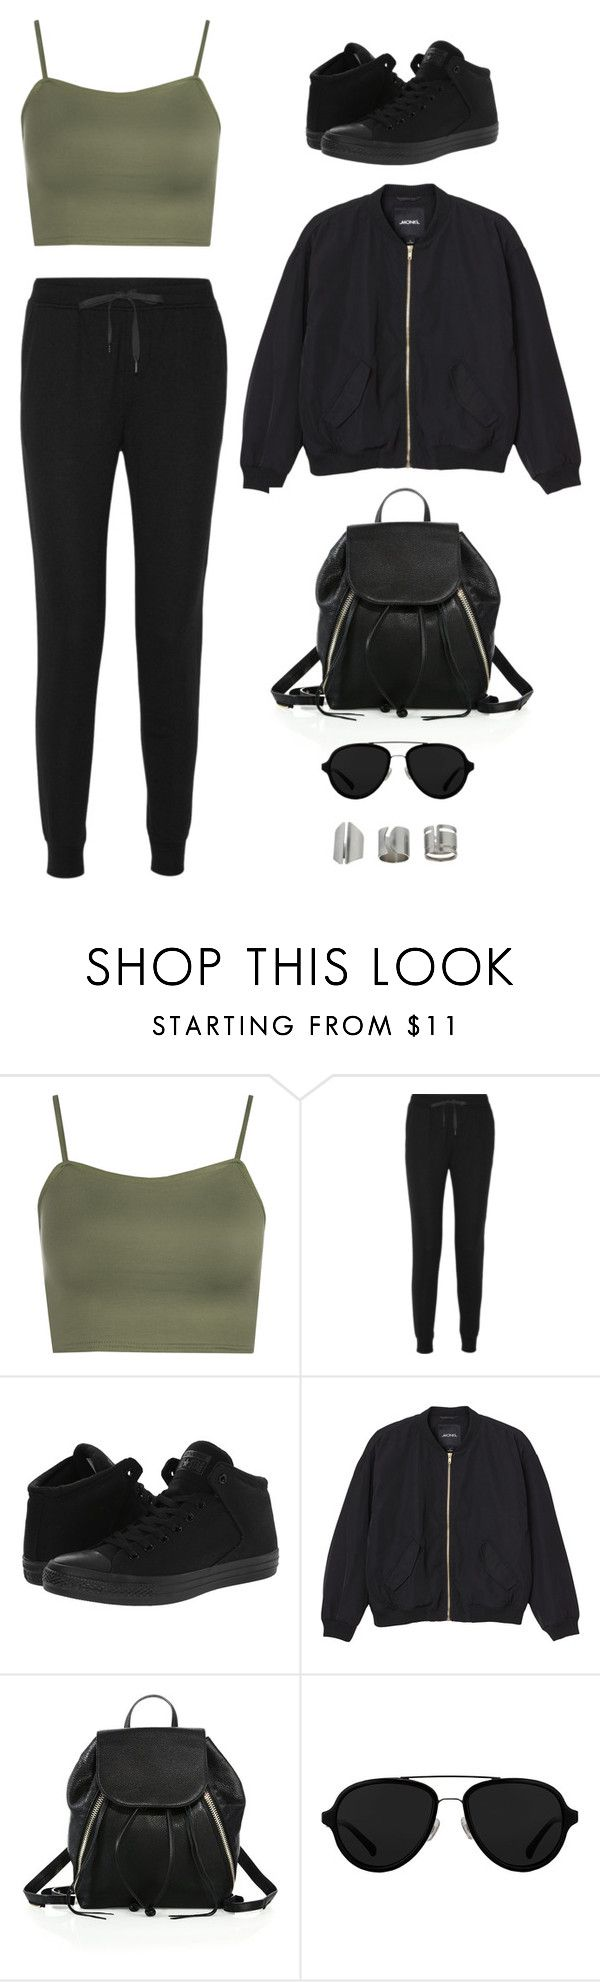 """""""Untitled #2627"""" by twerkinonmaz ❤ liked on Polyvore featuring WearAll, T By Alexander Wang, Converse, Monki, Rebecca Minkoff, 3.1 Phillip Lim and Topshop"""